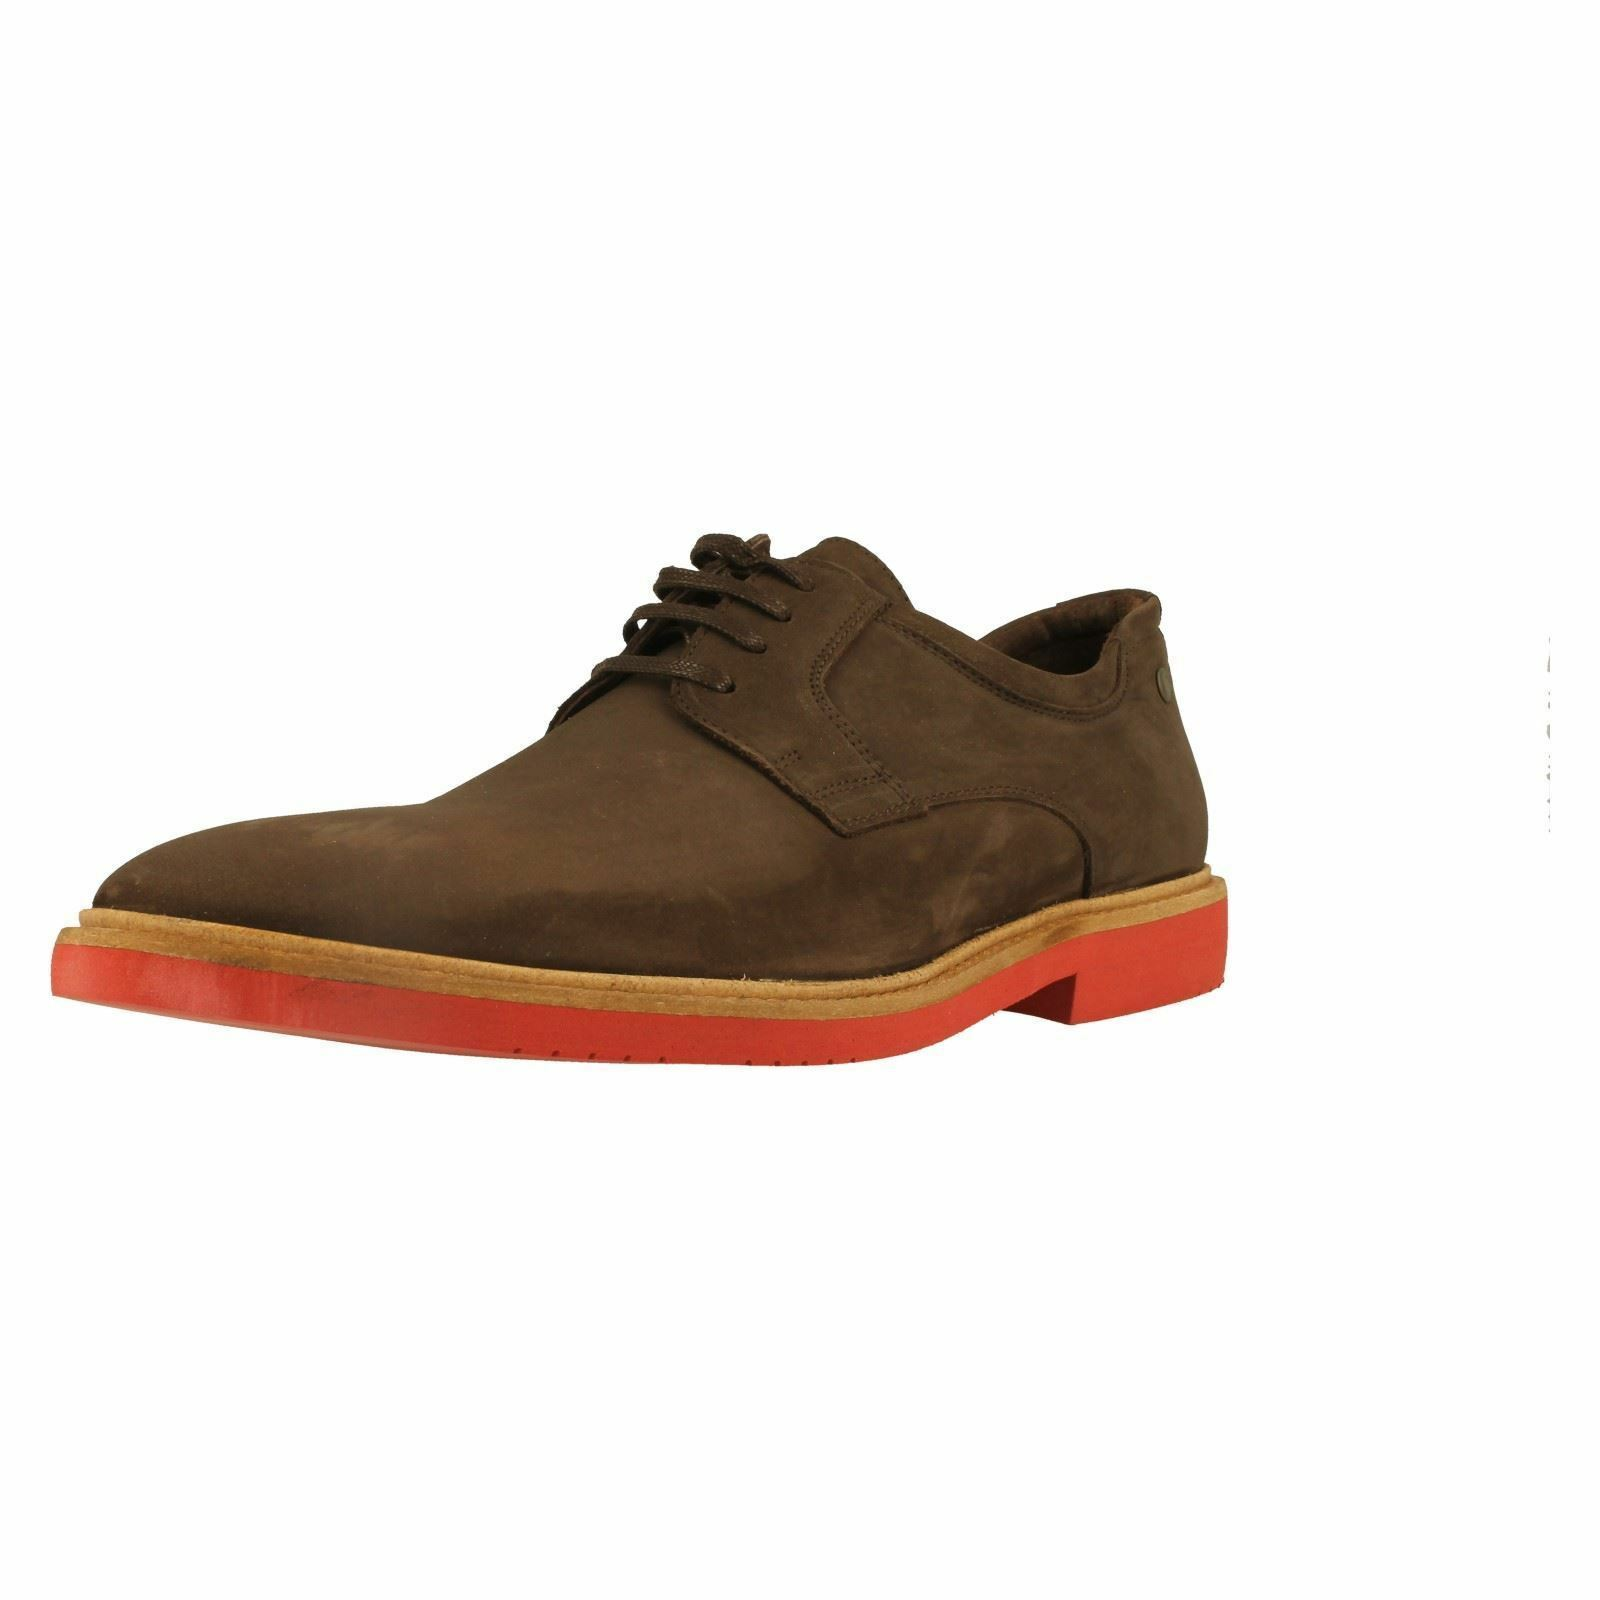 SALE Base London 'Gatsby' Mens Brown Slip On Leather Suede Casual shoes